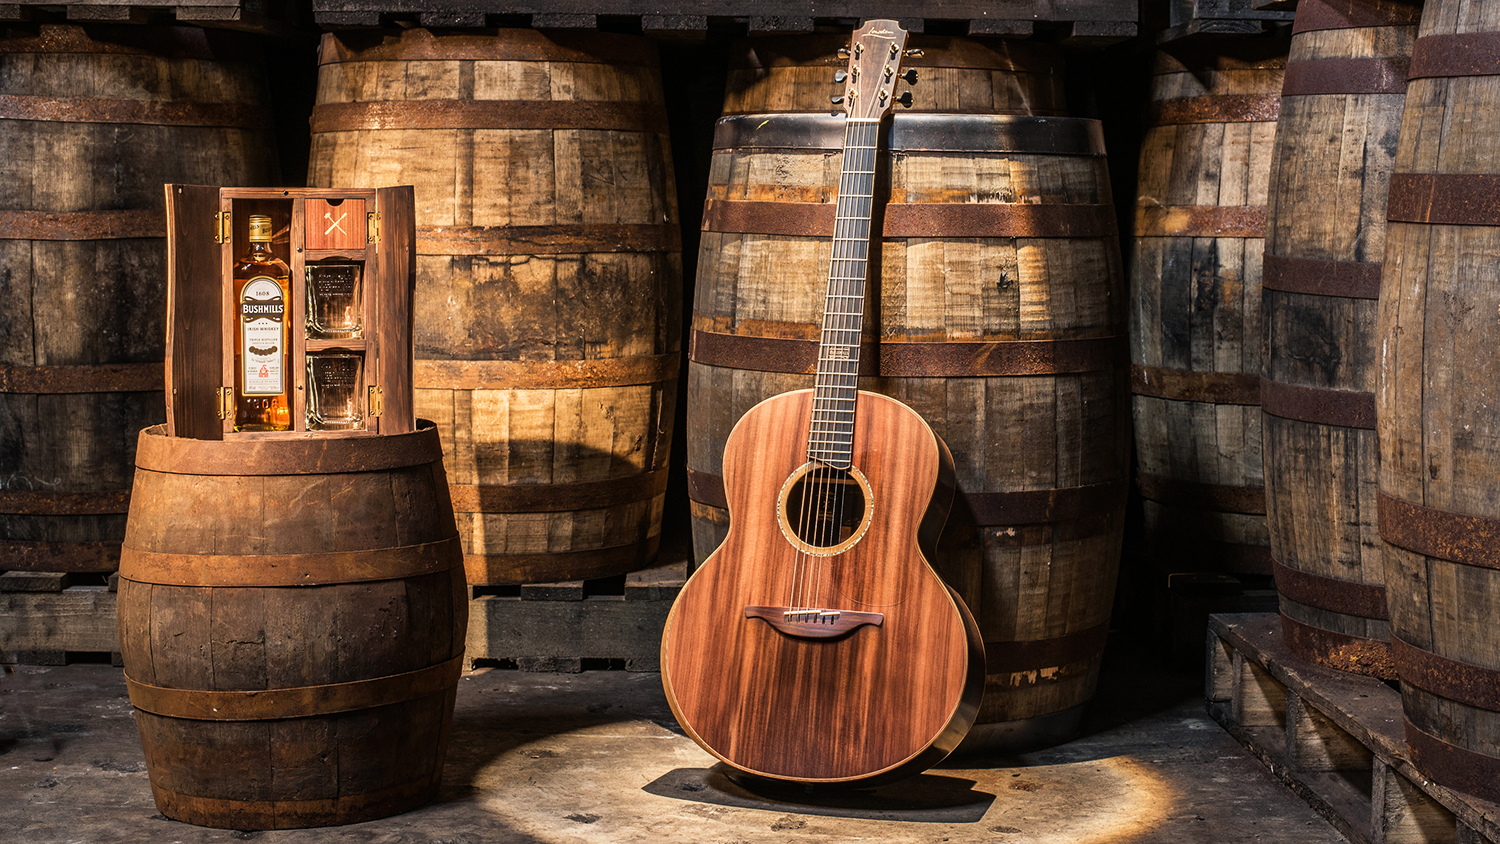 This Guitar Was Built with Wood from Bushmills Irish Whiskey Barrels